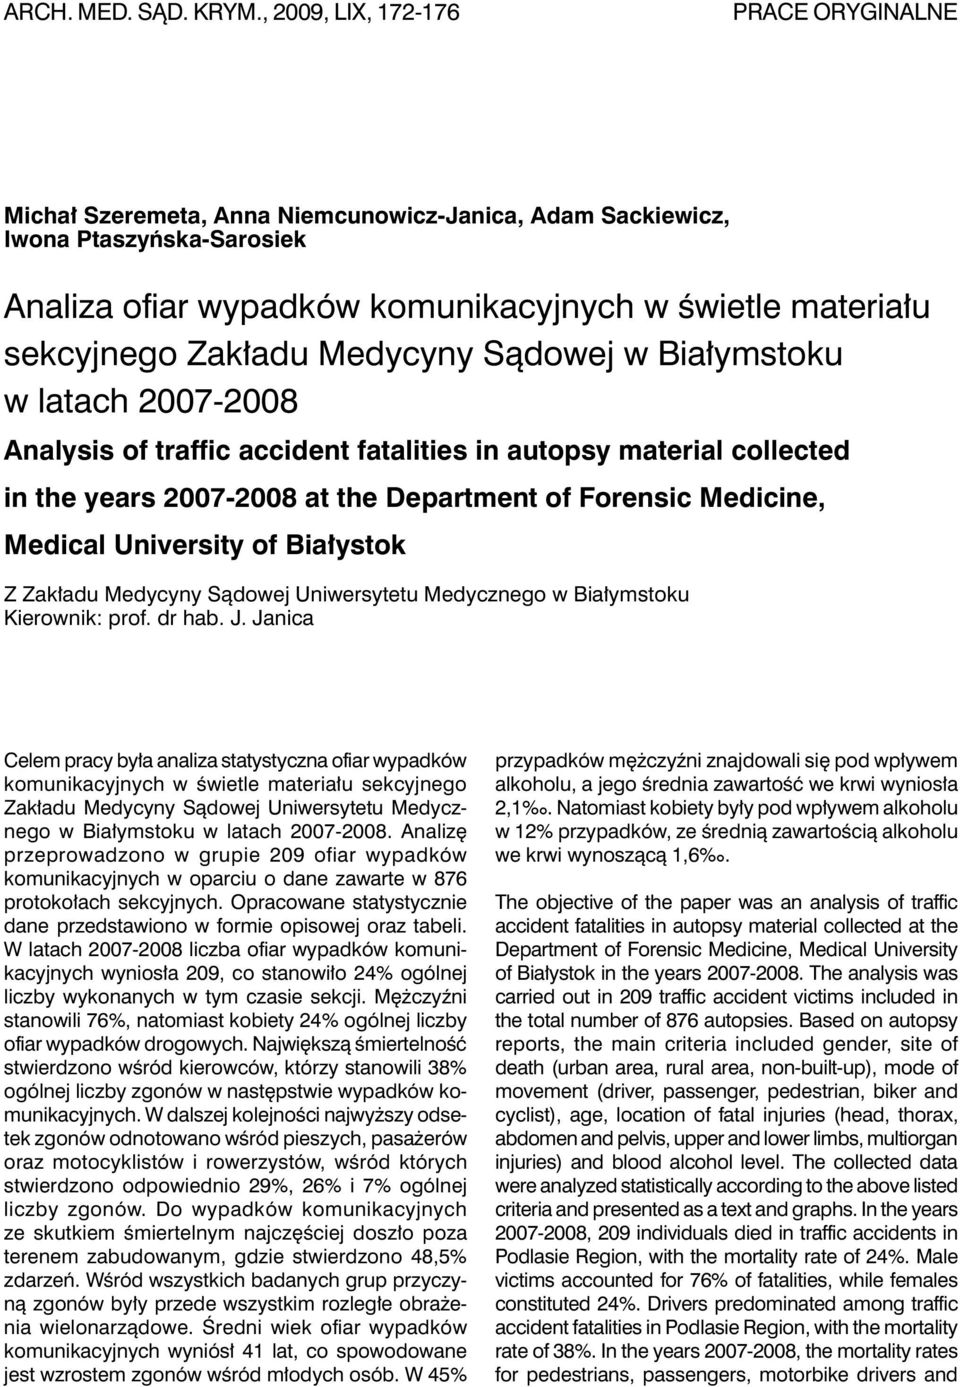 Zakładu Medycyny Sądowej w Białymstoku w latach 2007-2008 Analysis of traffic accident fatalities in autopsy material collected in the years 2007-2008 at the Department of Forensic Medicine, Medical